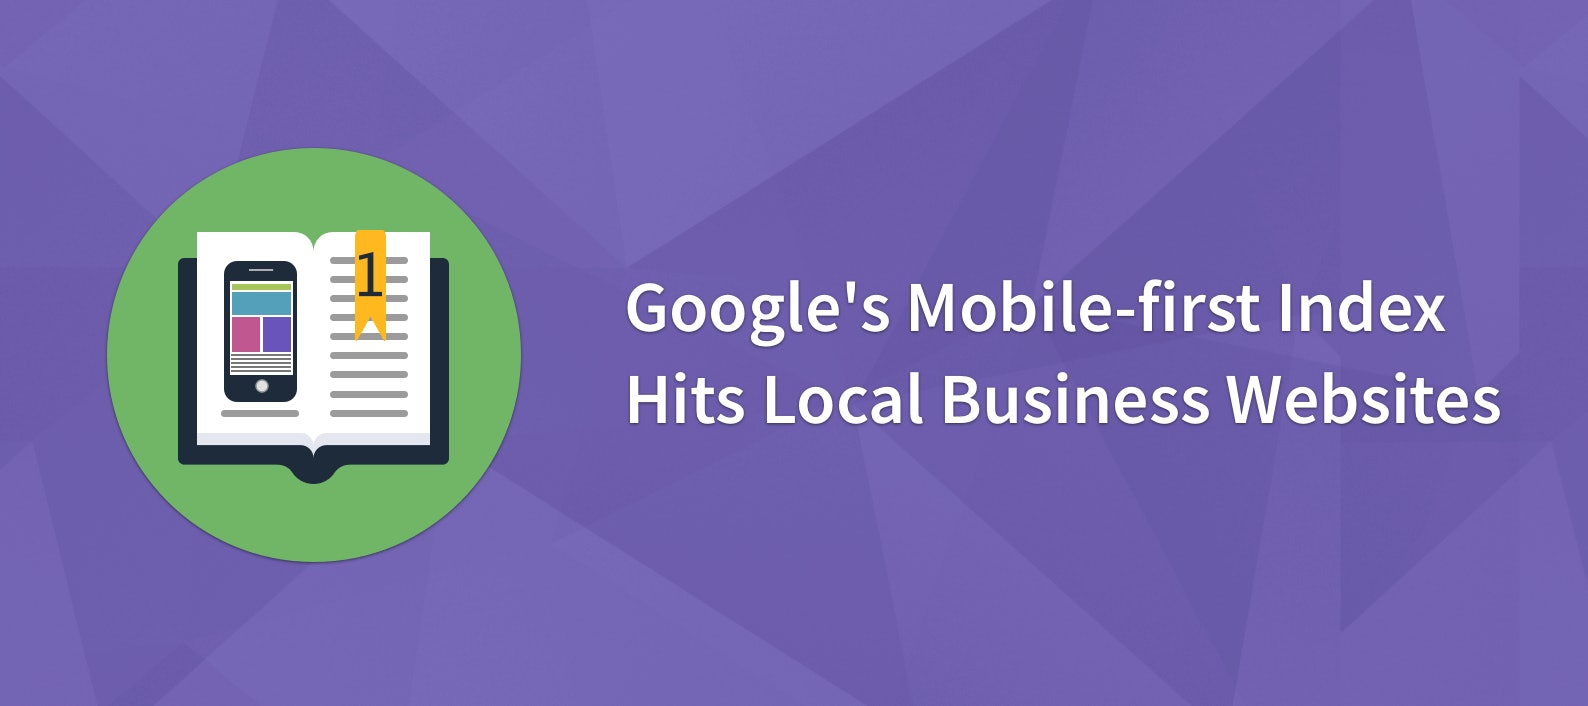 Google's Mobile-first Index Hits Local Business Websites